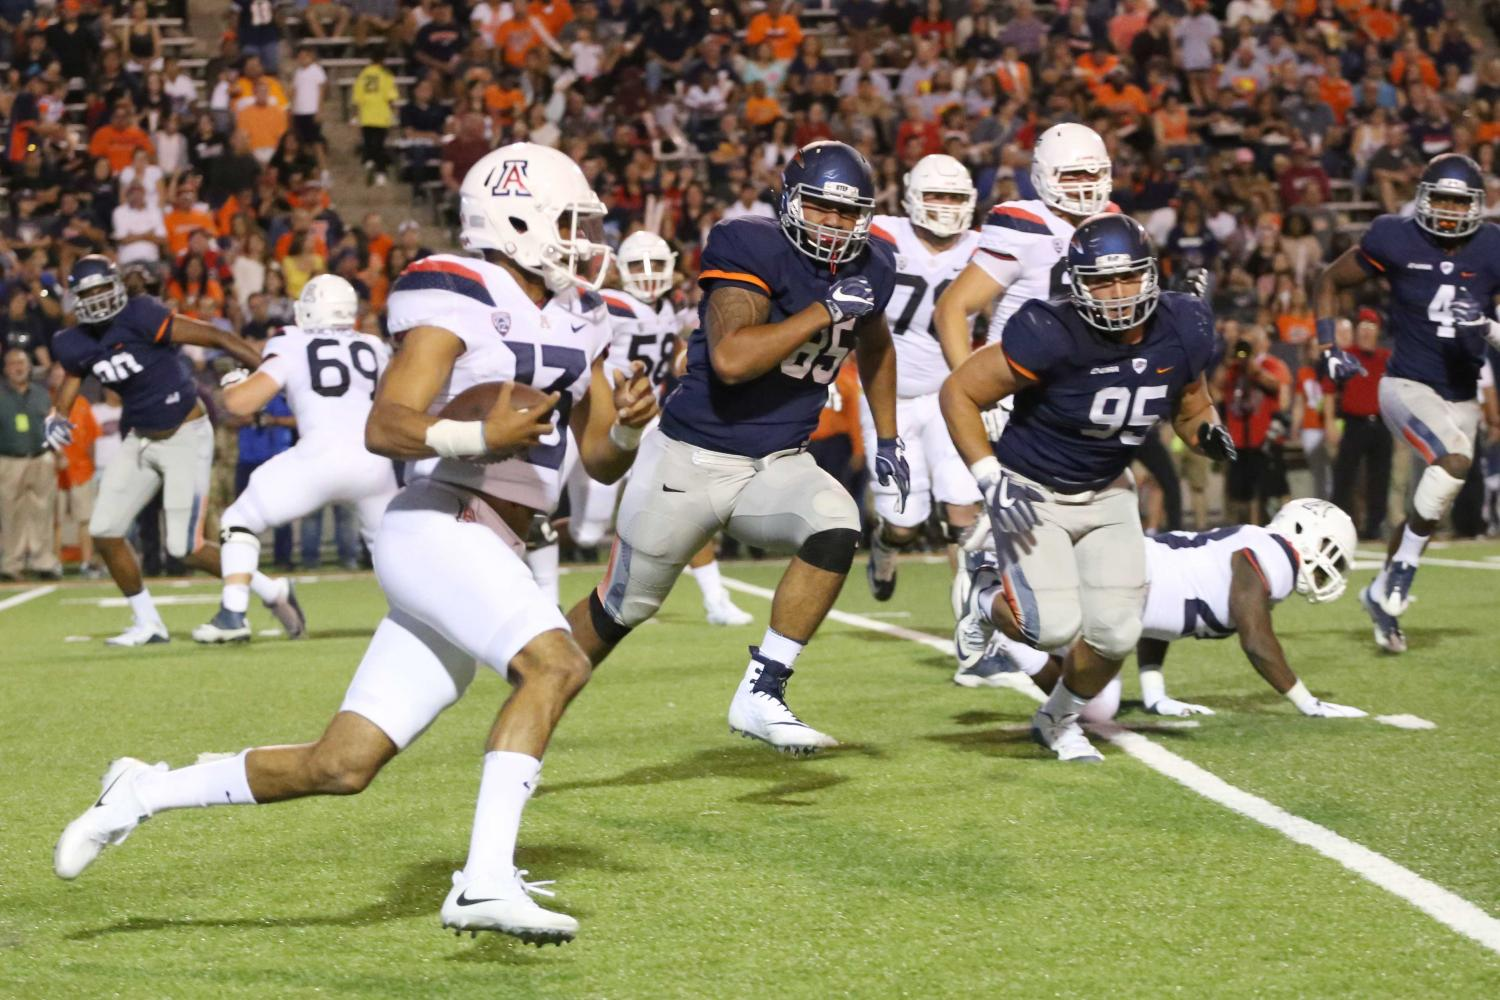 Miners blown out by Arizona 63-16